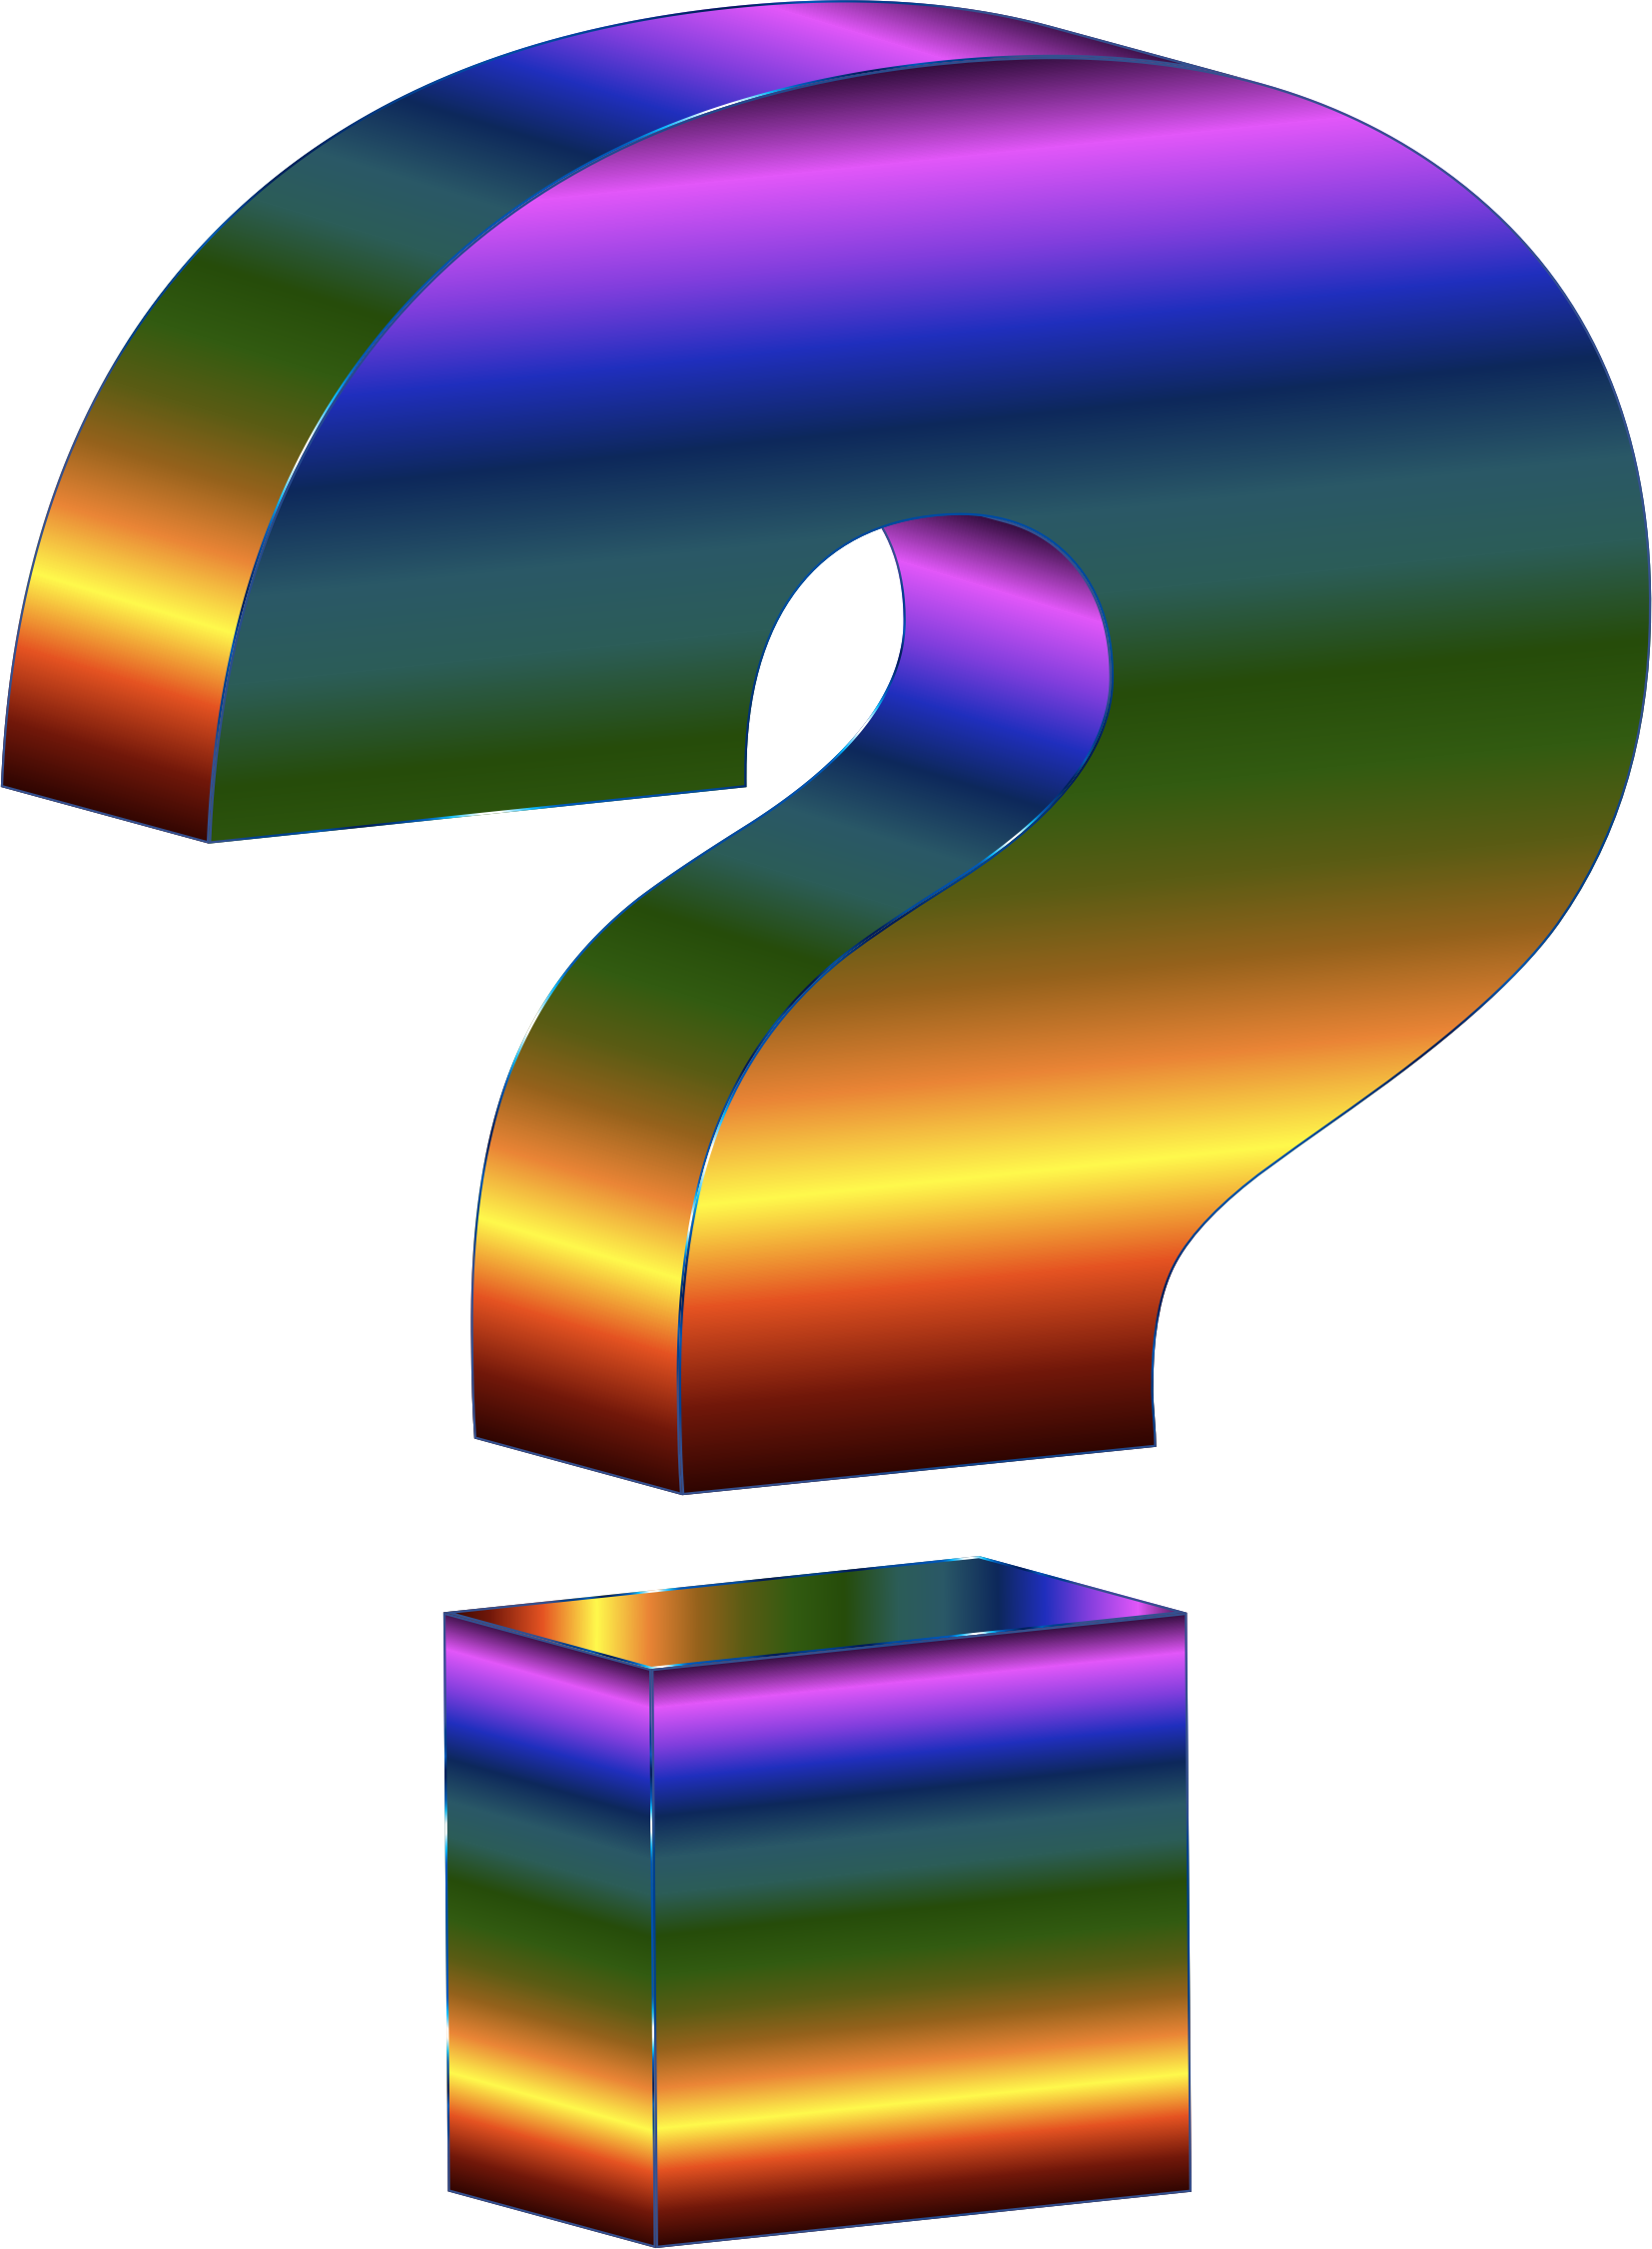 Question mark png image. Prismatic d icons free